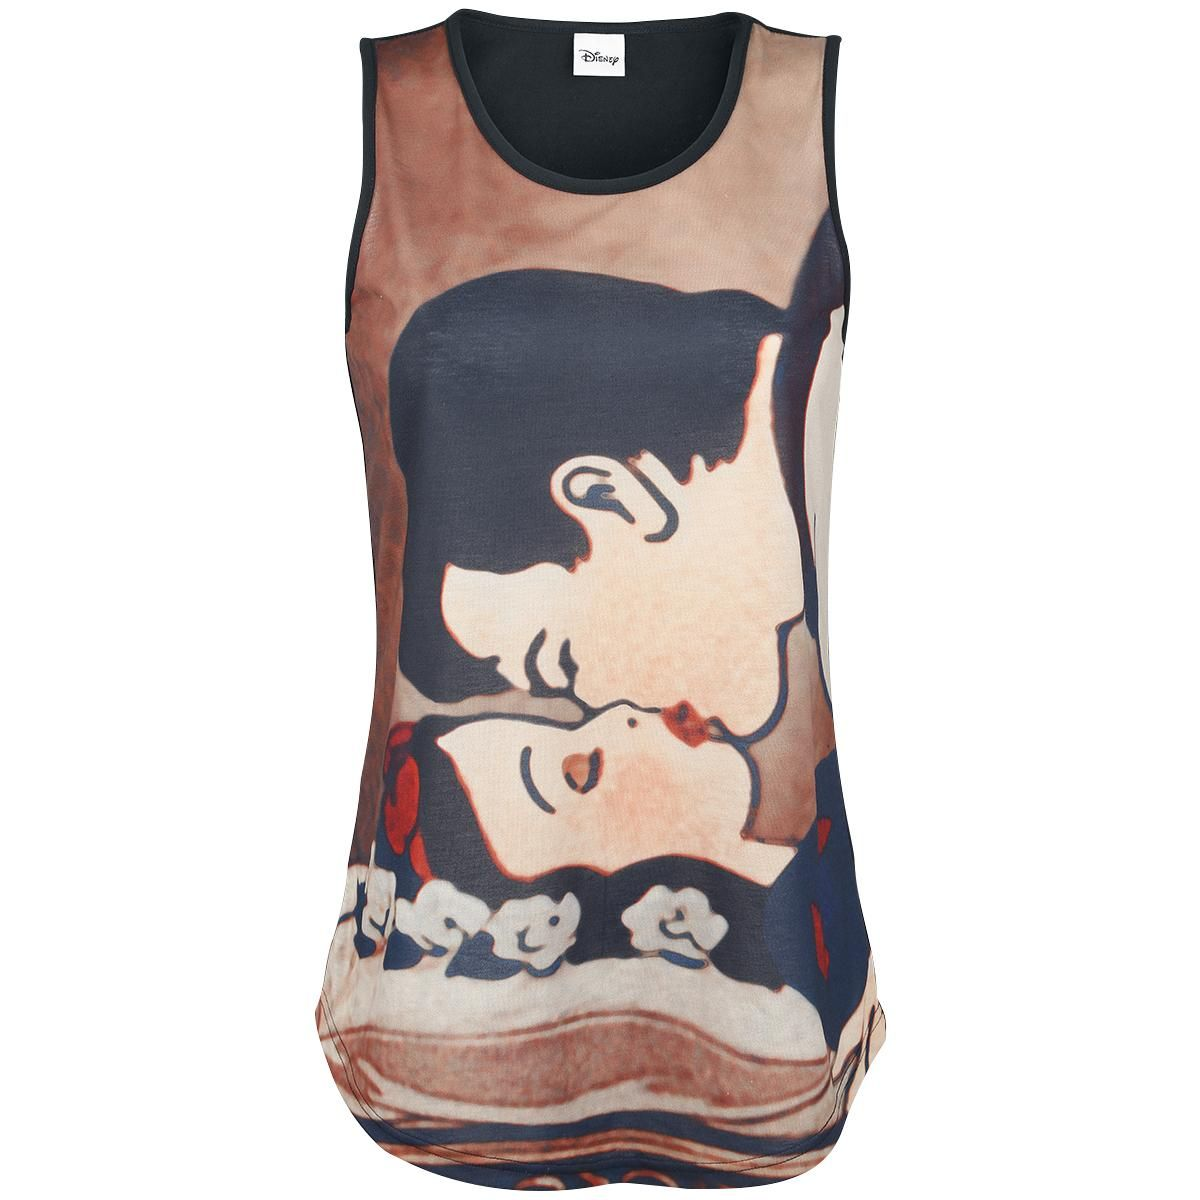 "Snow White - Kiss - front print - black back - sublimation print - Walt Disney Once there was beautiful princess by the name of Snow White whose life became hell thanks to her jealous stepmother. Snow White escaped and found shelter with the loving seven dwarves. But her stepmother followed her with a poisoned apple. The ""Kiss"" girls top features the gracious kiss between Snow White and the prince, ultimately reviving her. The colours of this top won't lose their intensity tha..."